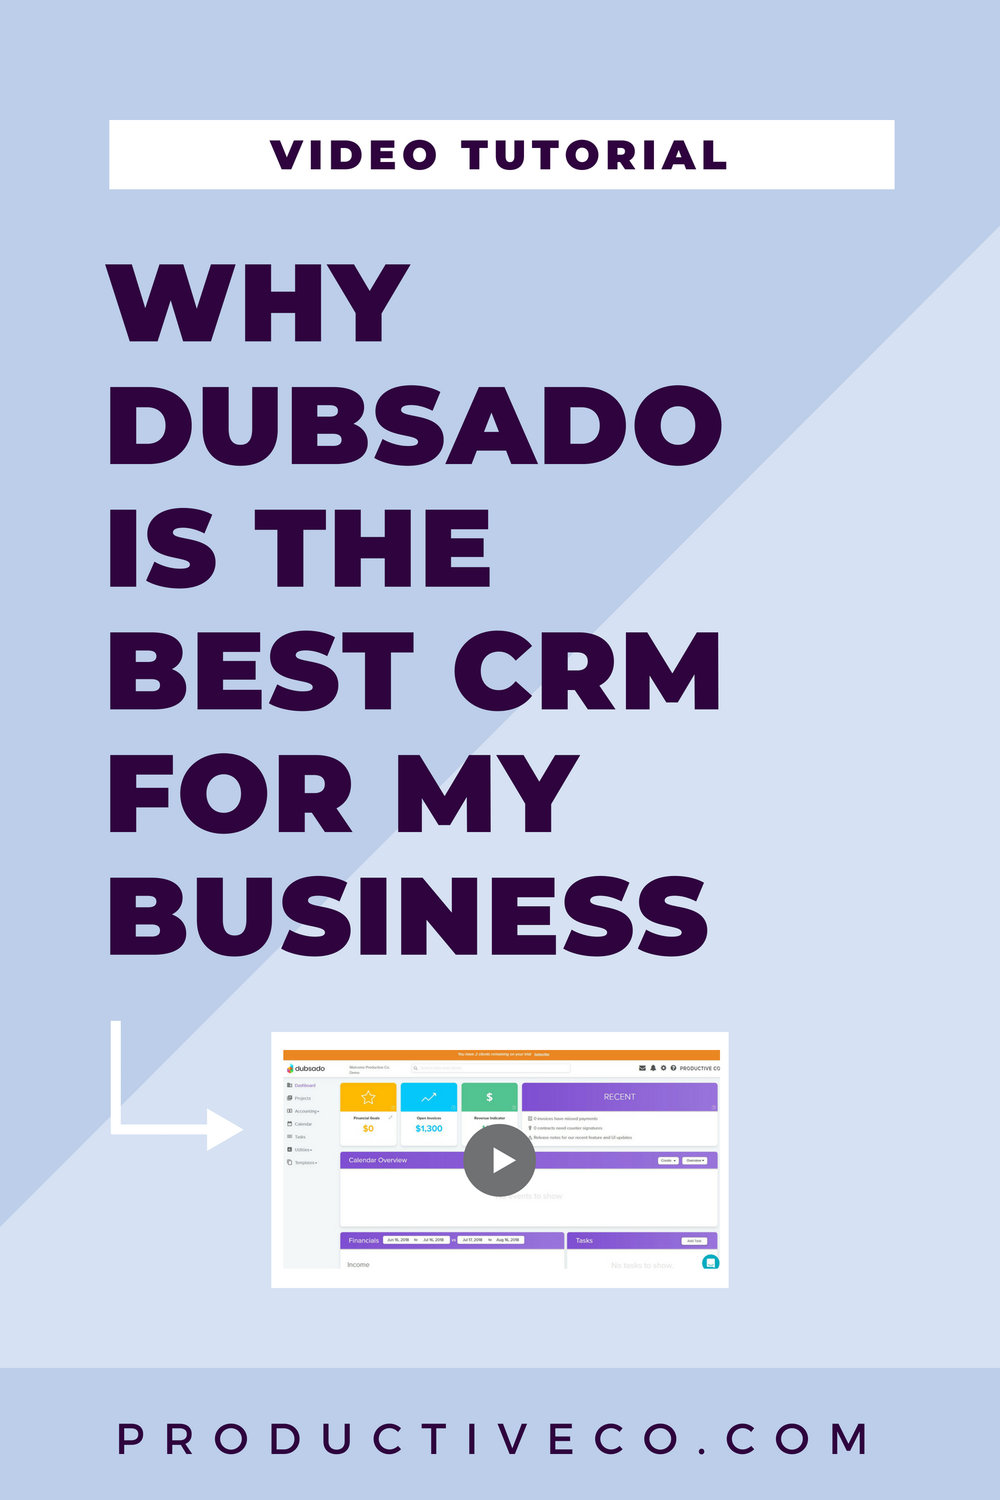 Dubsado is the best crm for creative business owners and creative entrepreneurs. Find out why it works well for me.